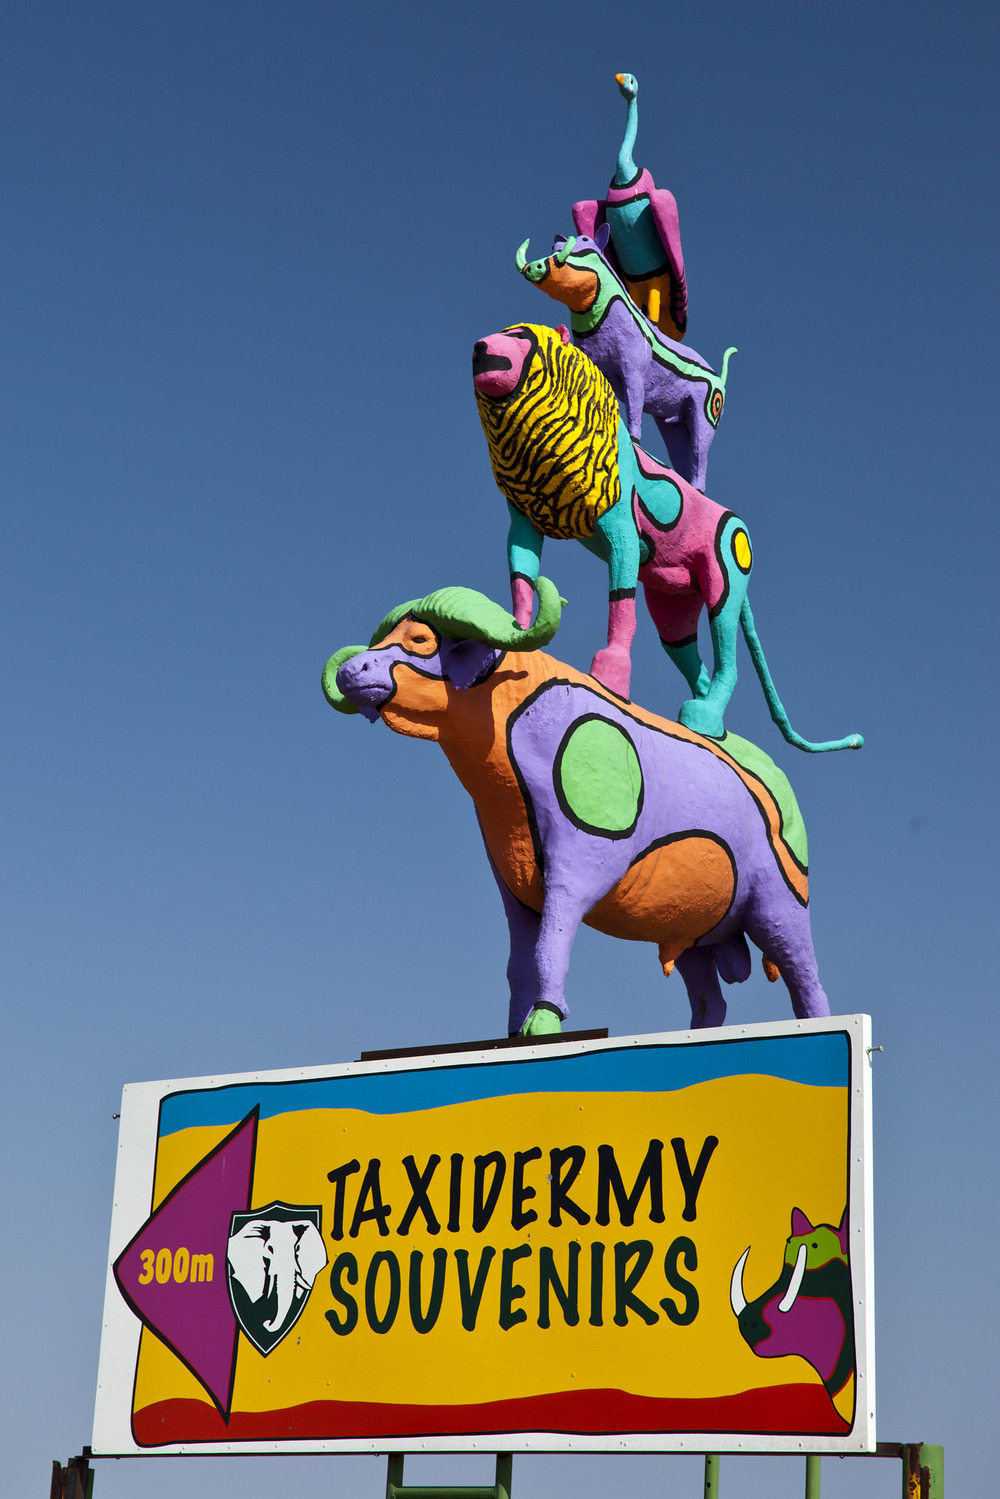 Taxidermy Souveniers - Windhoek